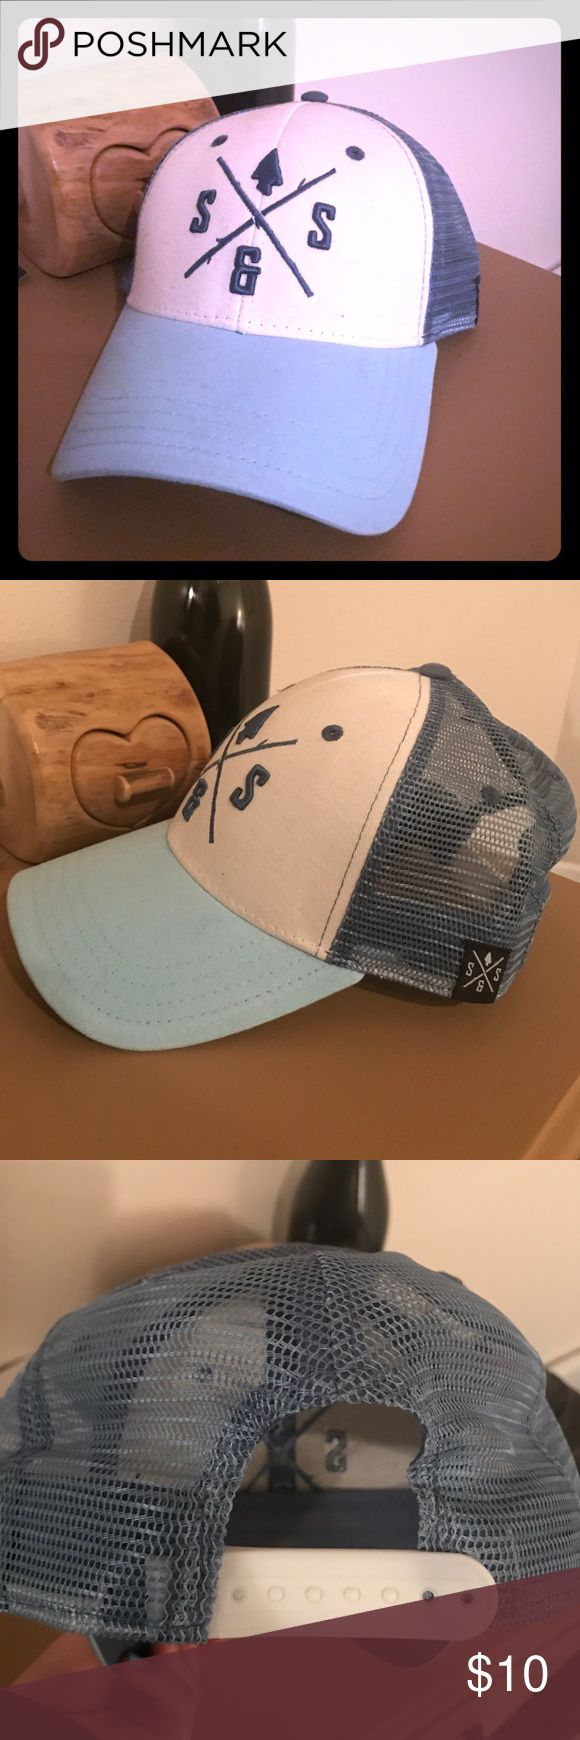 """Blue and White Trucker Cap Cute blue and white """"Stix & Stones"""" adjustable trucker cap. Stix & Stones Accessories Hats"""